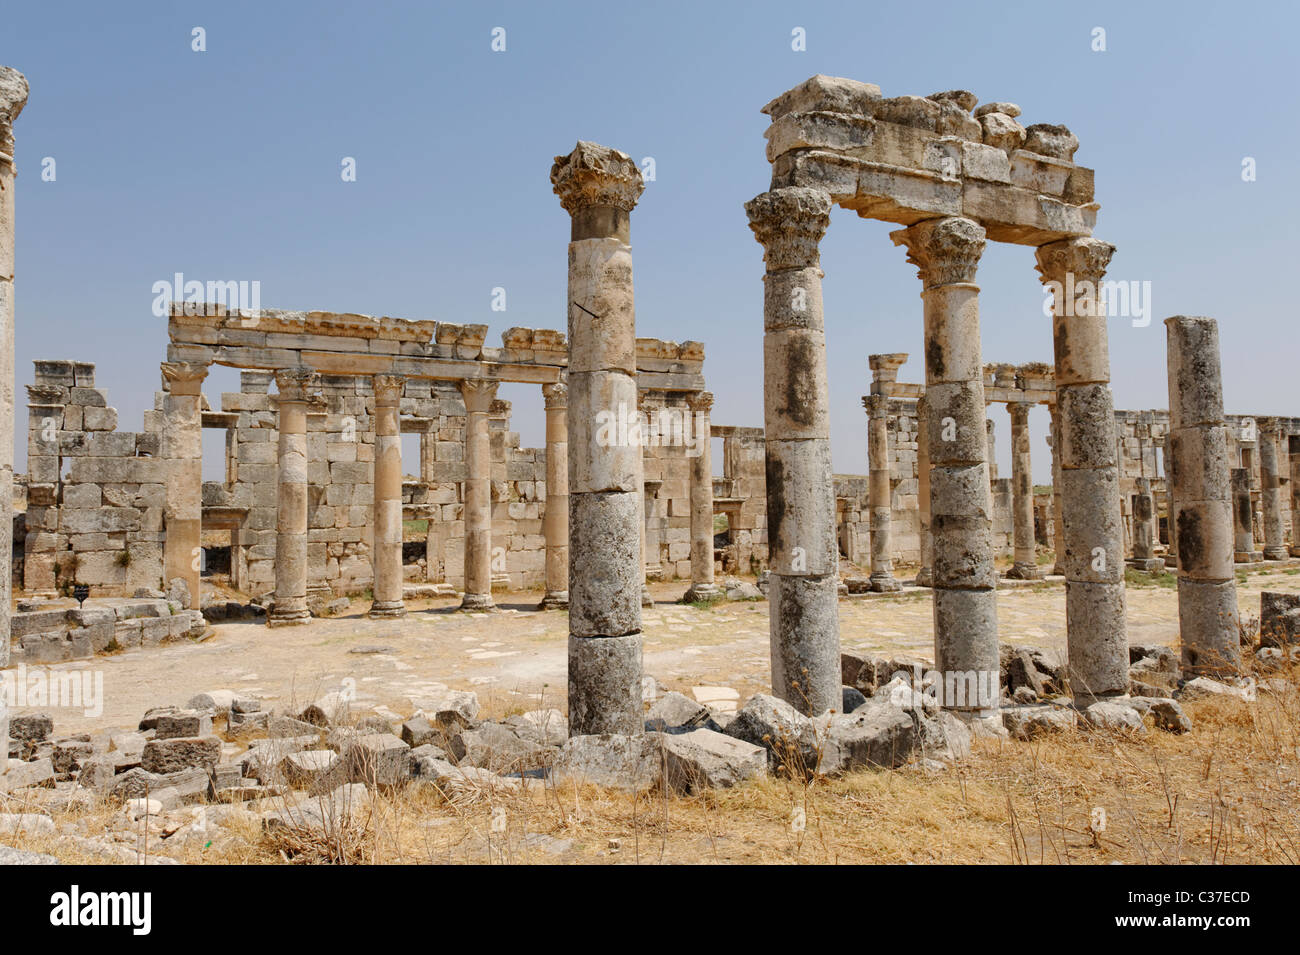 Classically inspired section of the monumental Colonnaded Street of the ancient city of Apamea. - Stock Image